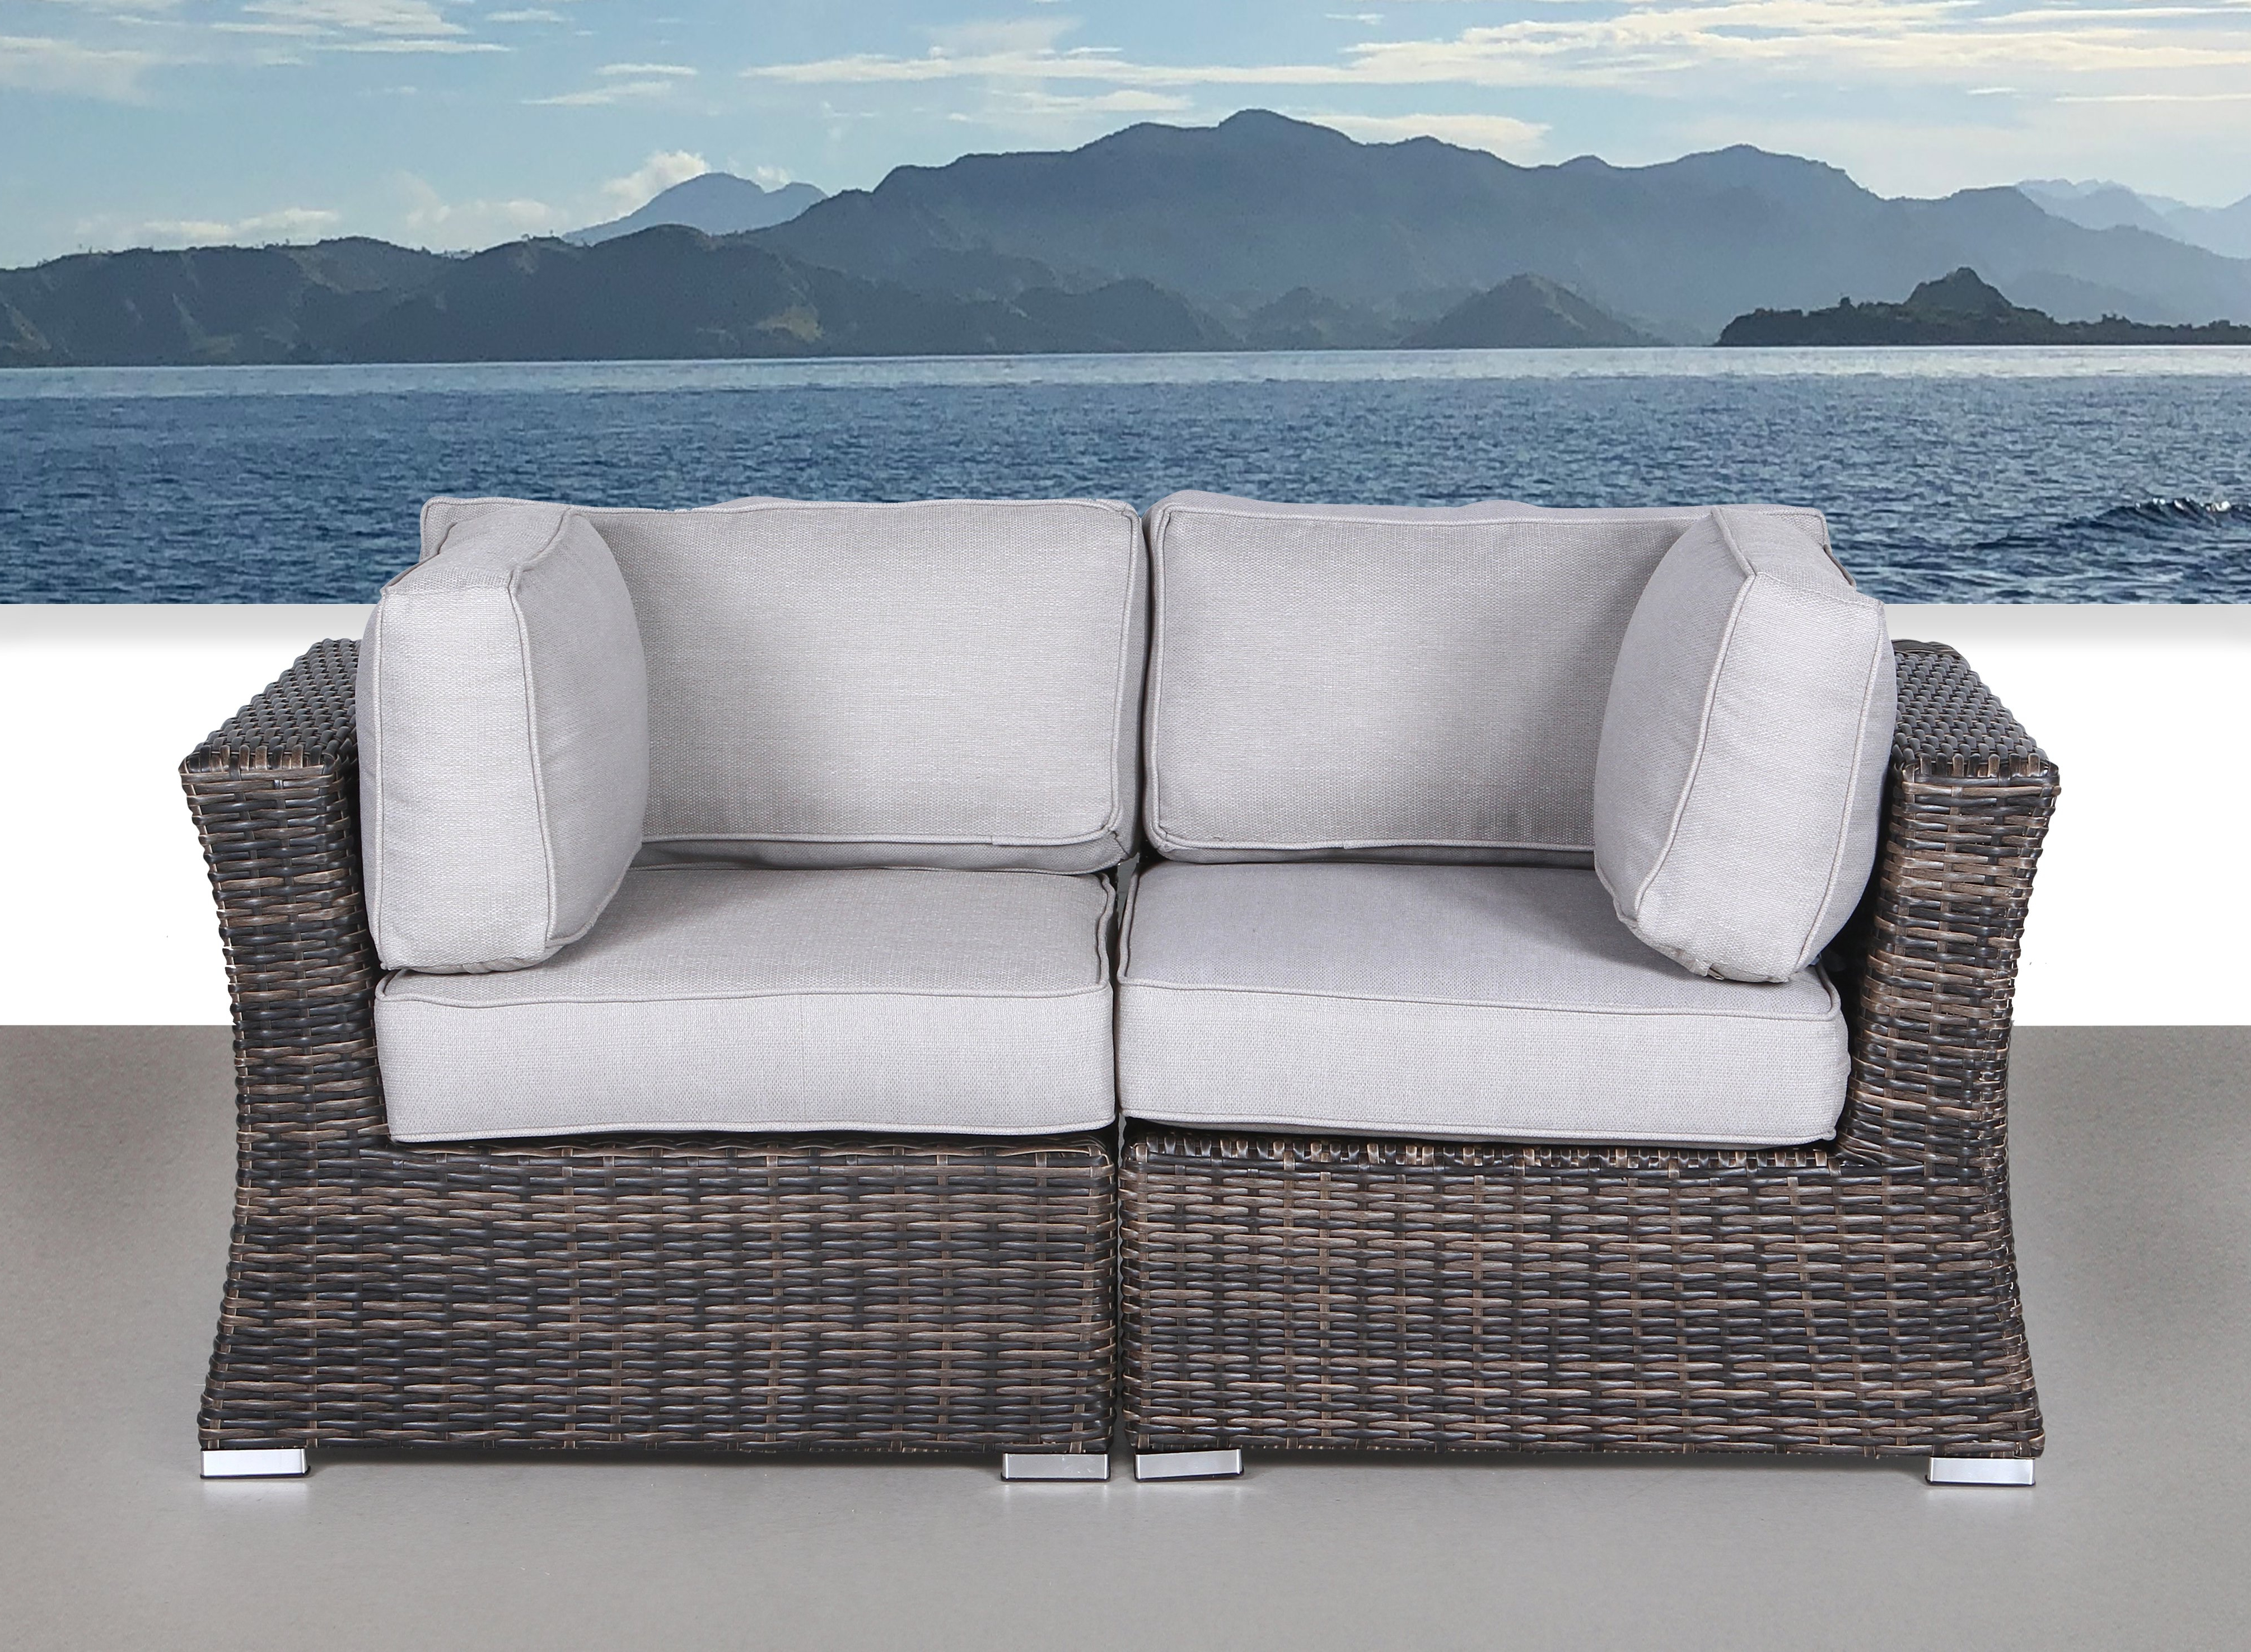 Famous Huddleson Contemporary Loveseat With Cushion In Huddleson Loveseats With Cushion (View 2 of 20)